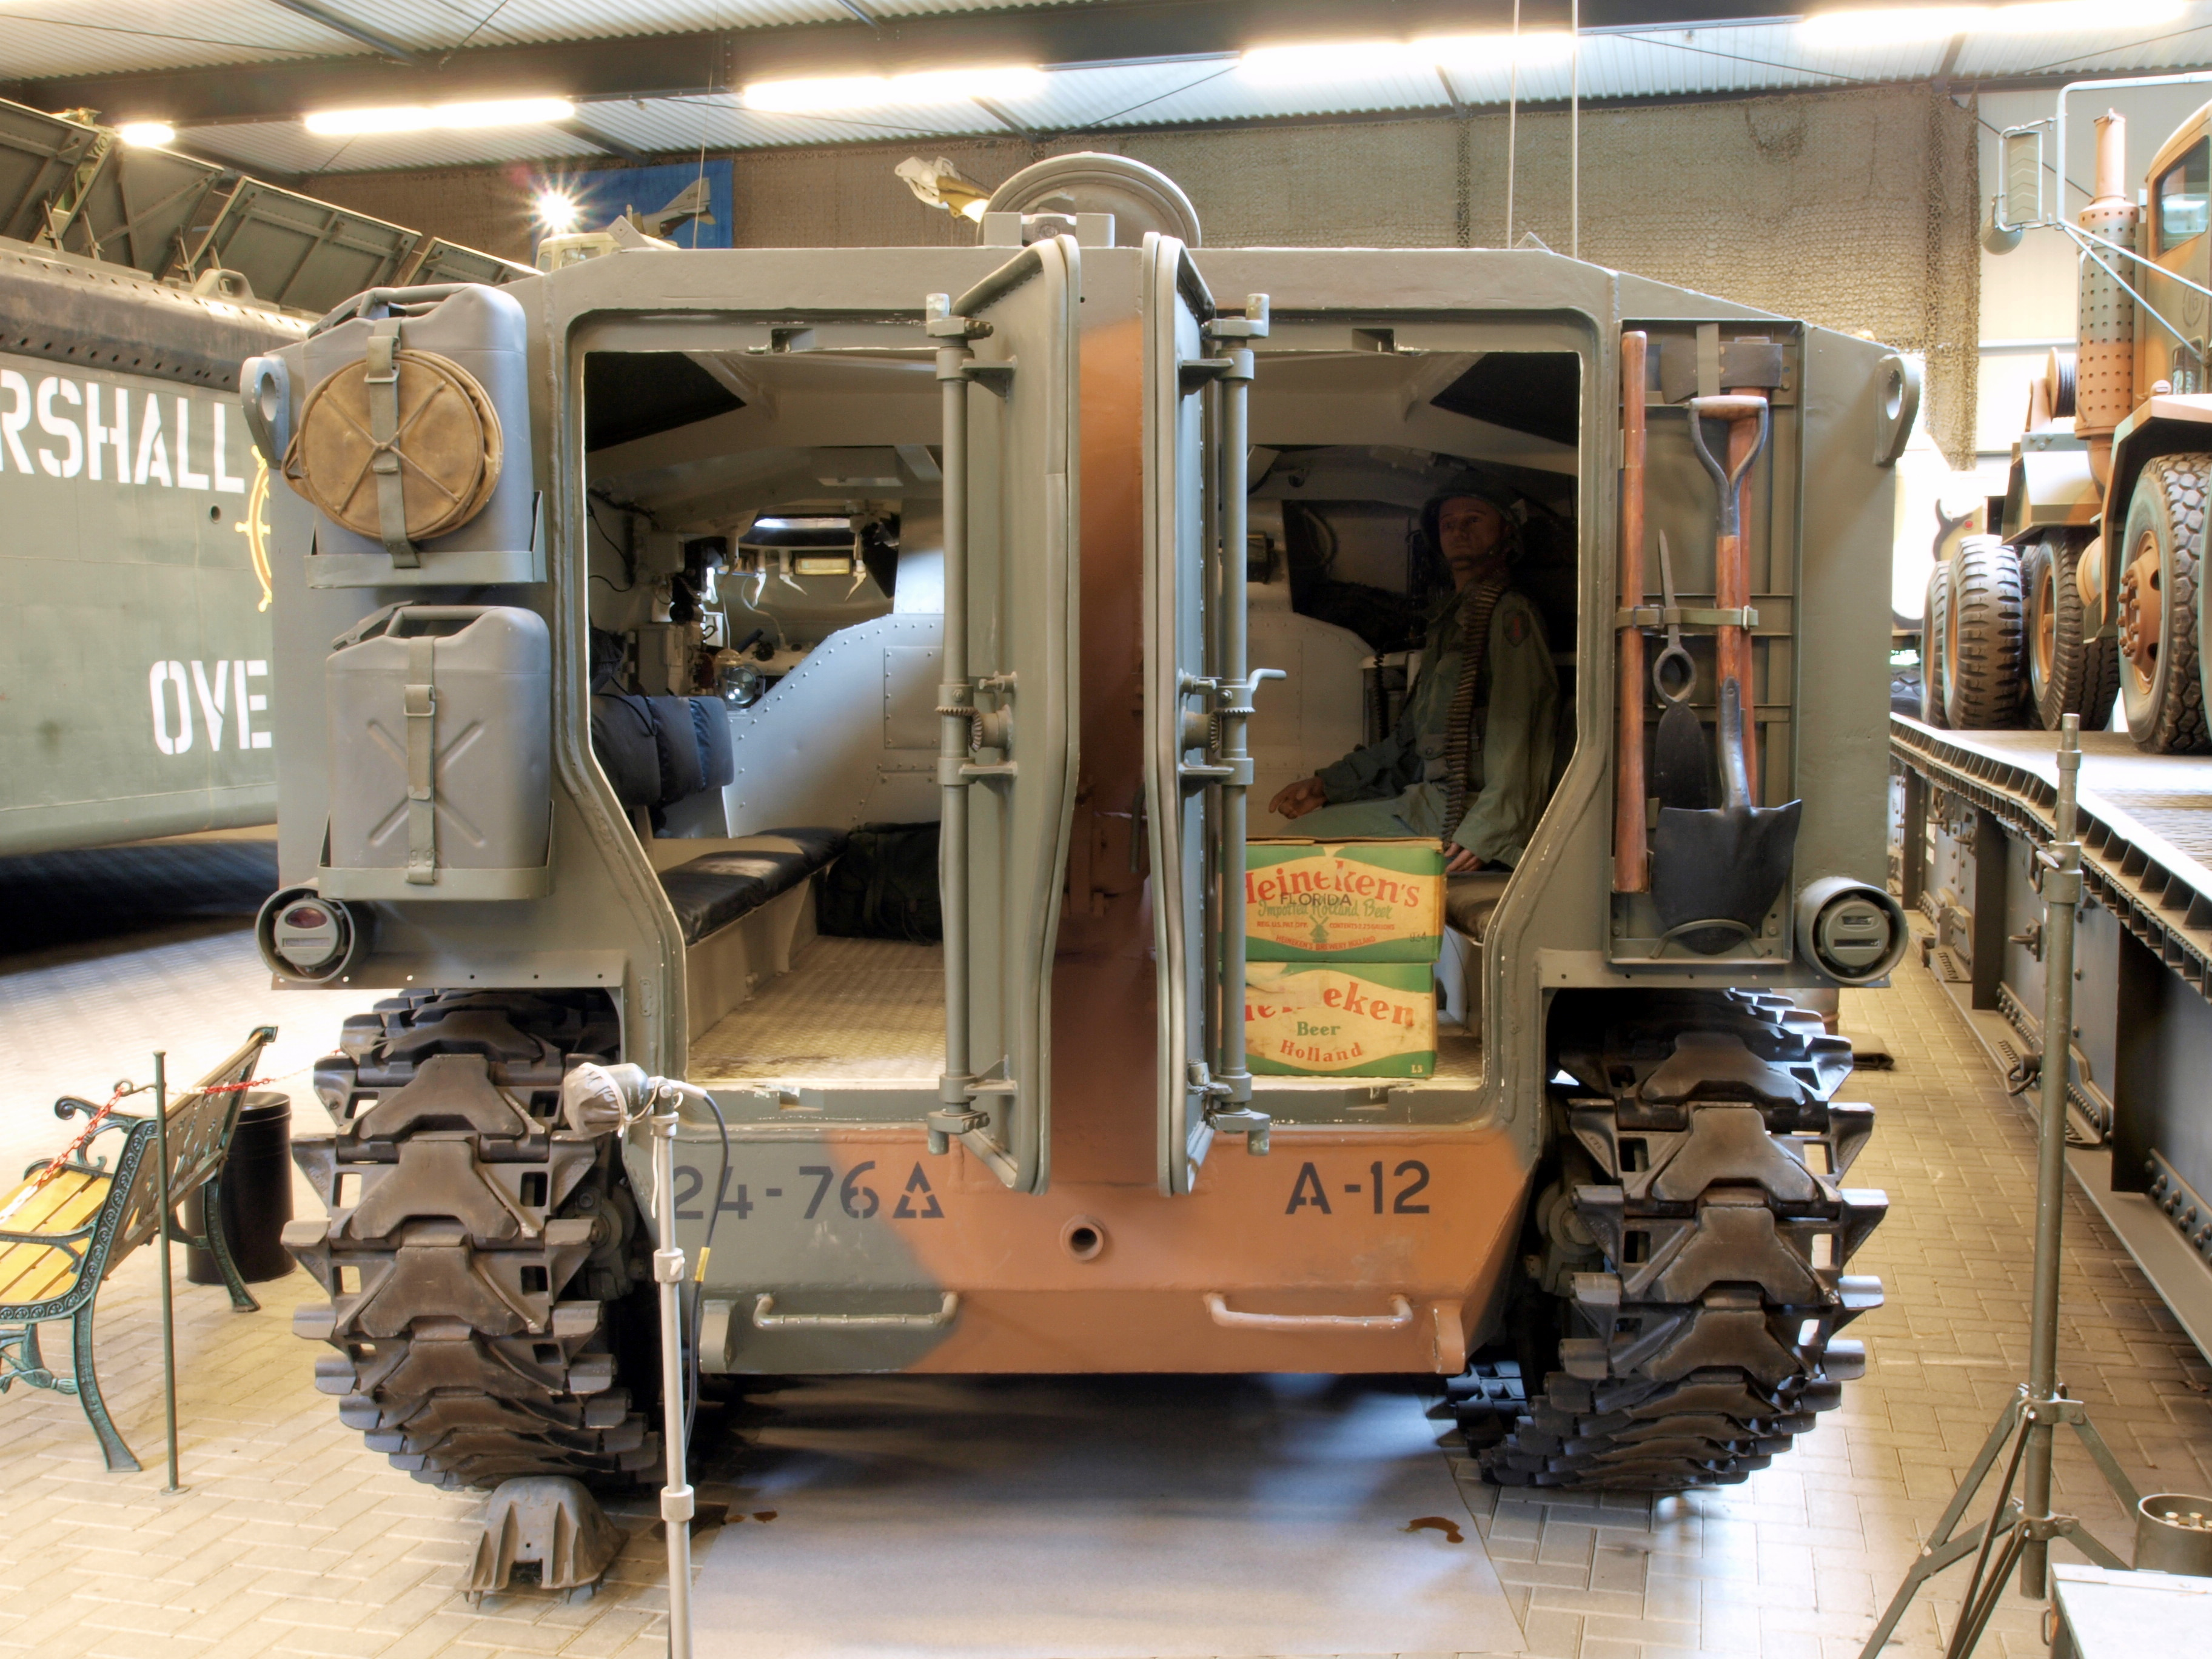 File Moscow OMON BTR 80  32 1 together with 9k37 buk M1 sa 11 gadfly technical data sheet specifications information description pictures photos furthermore Build The Thunderbird 2 further Vehiculo in further Vehiculo in. on international military vehicles